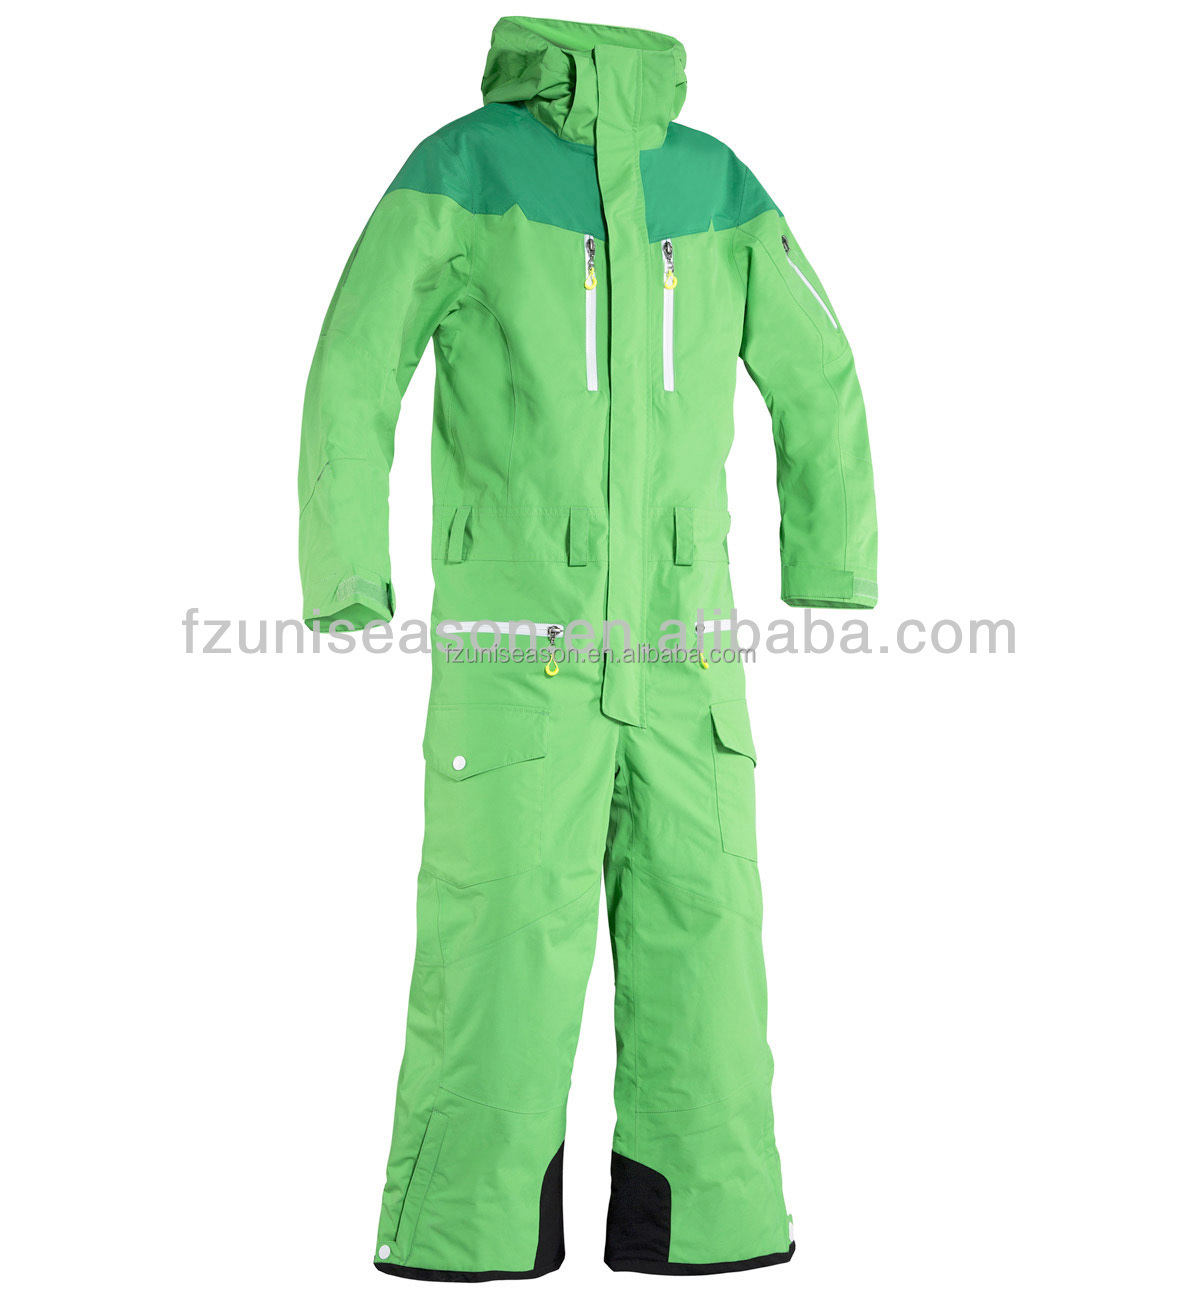 Uniseason winter adult one piece snow suits